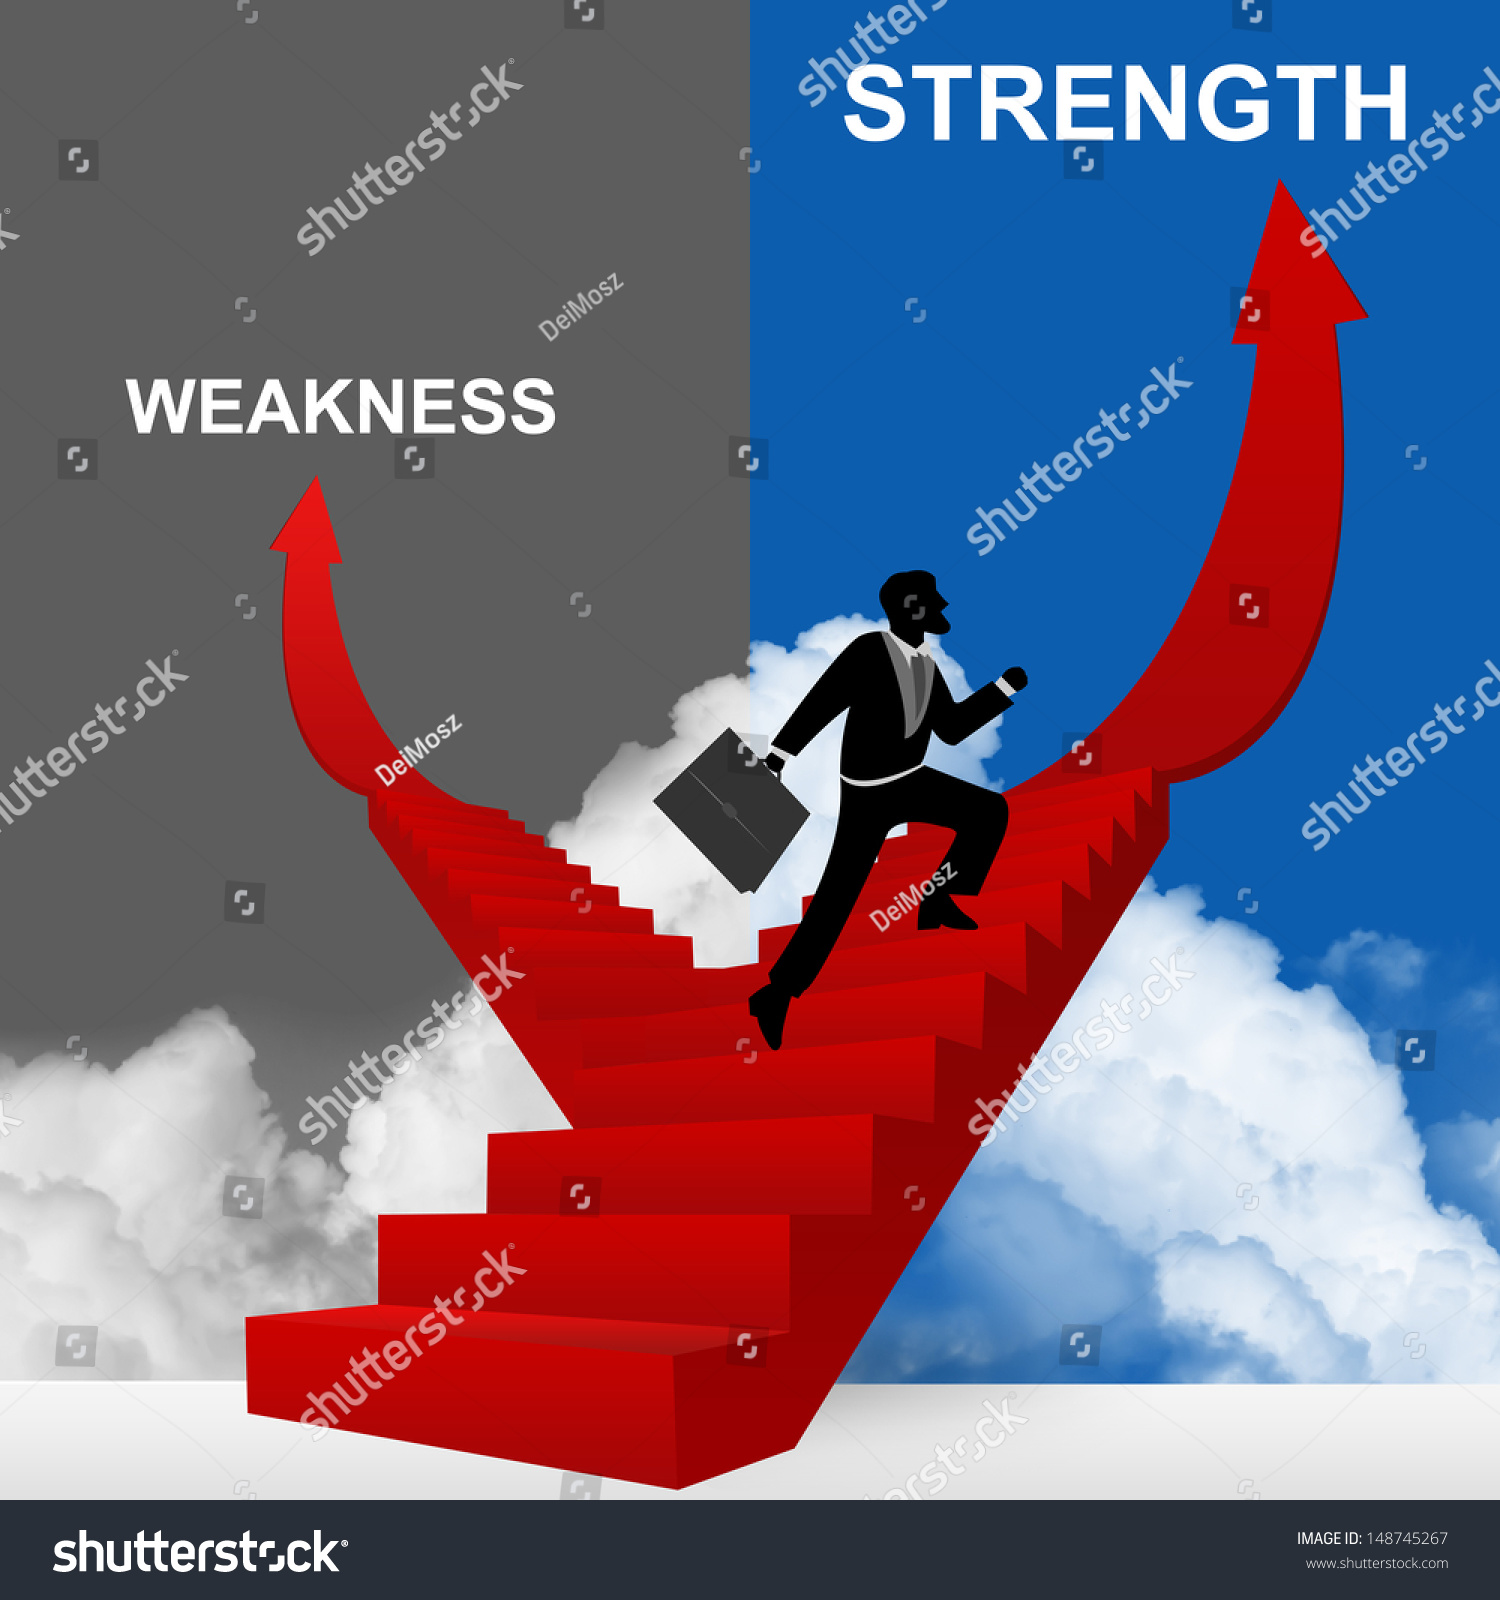 concept business solution present by strength stock illustration concept of business solution present by strength and weakness stairway the businessman step up to